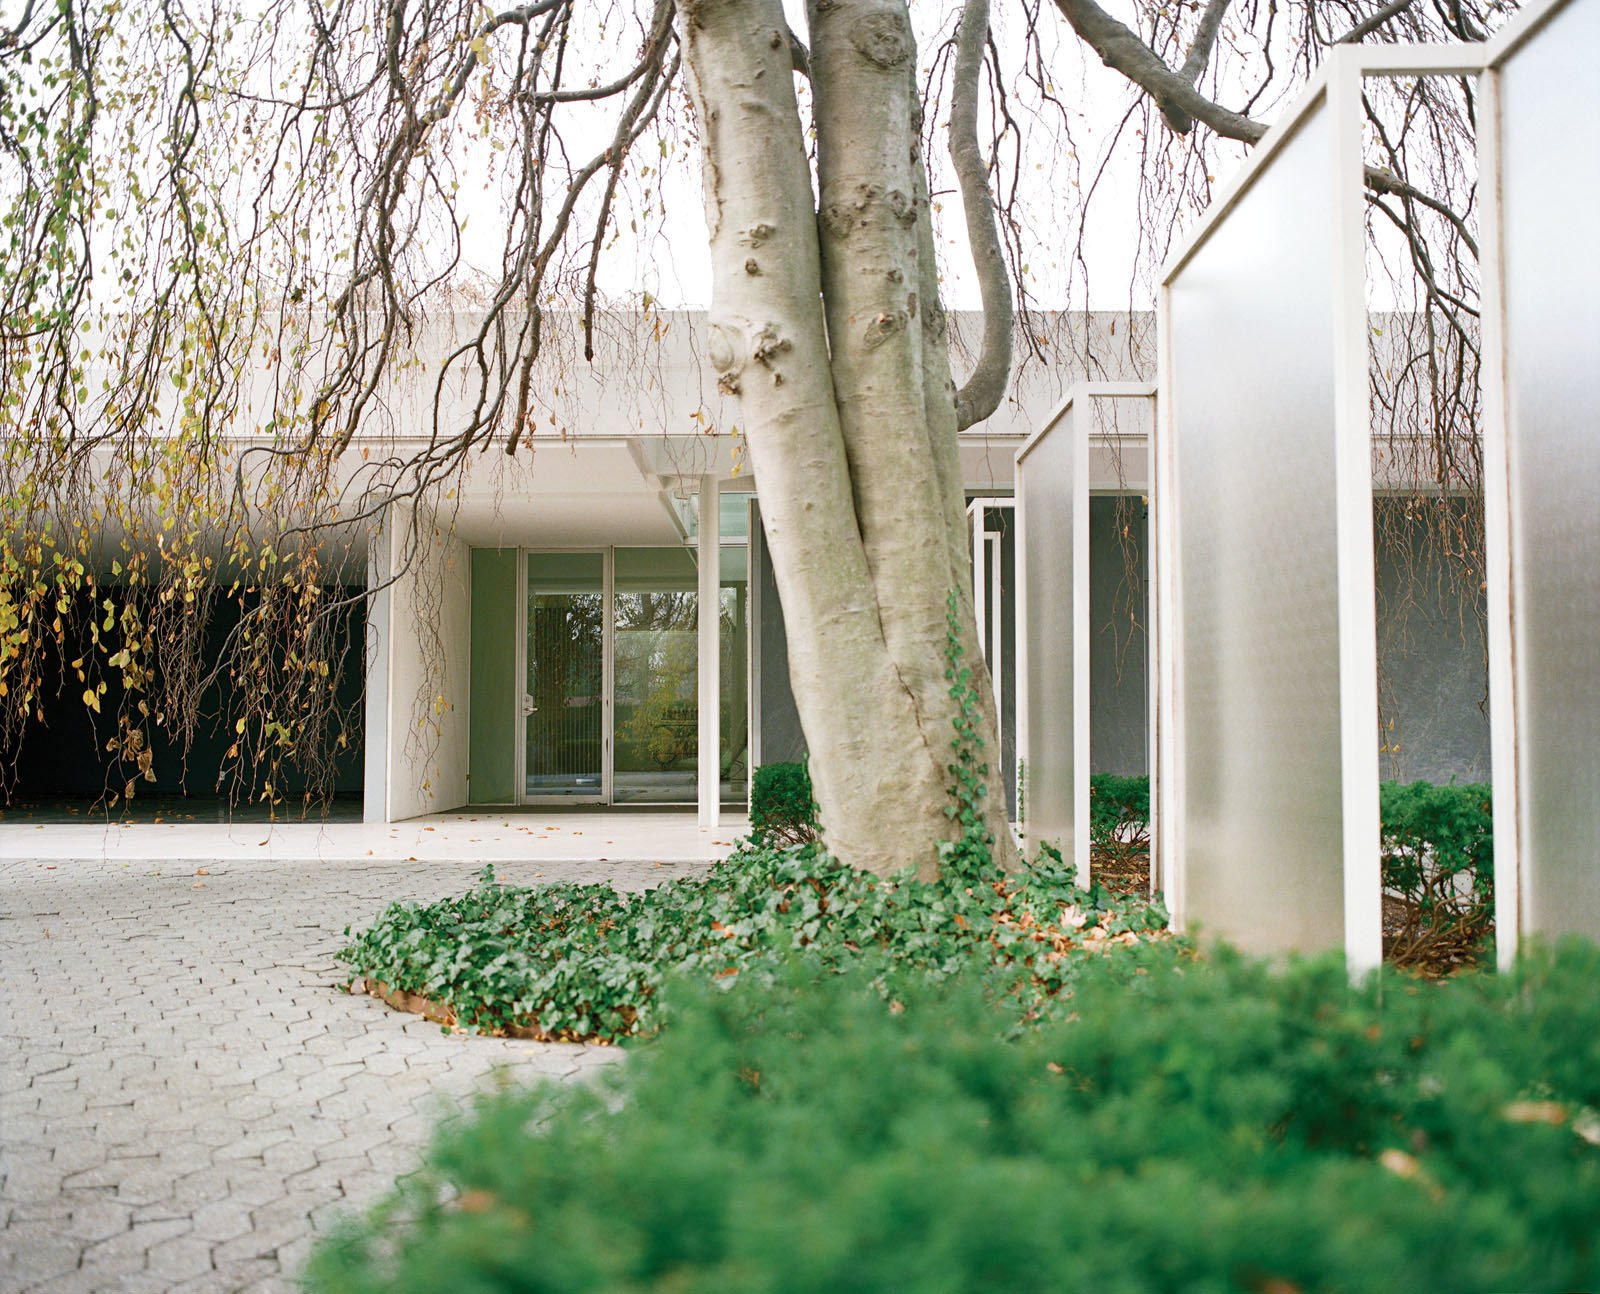 The front entrance of the Miller House is flanked by a series of glass screens, designed by either Dan Kiley or Girard.  Miller House in Columbus, Indiana by Eero Saarinen by Leslie Williamson from Why Columbus, Indiana, Should Be Your Next Design Destination